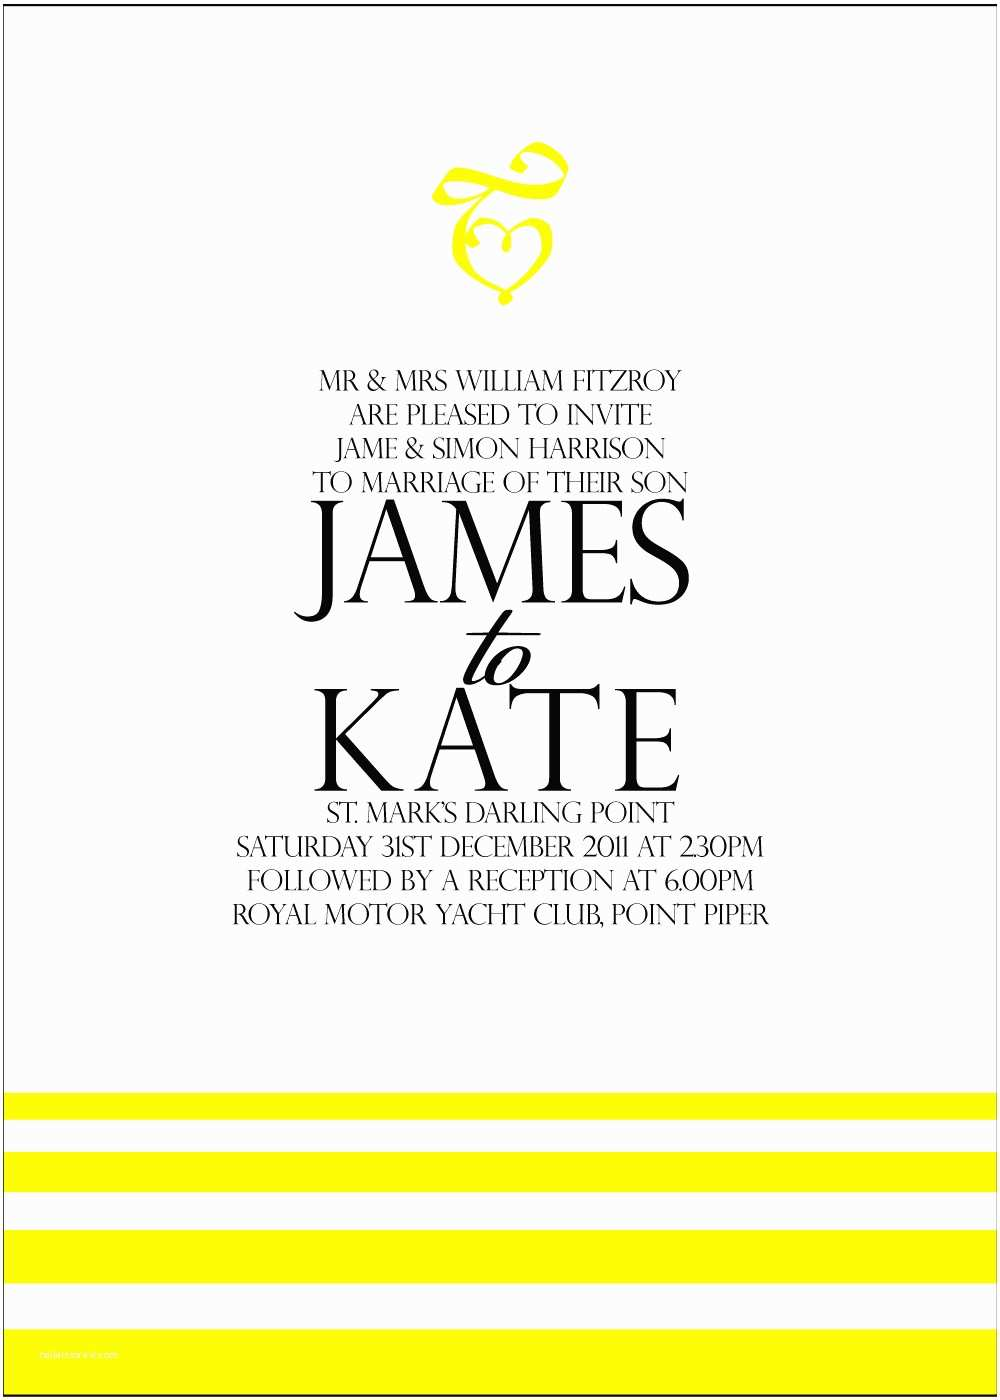 Wedding Invitation Wording Bride and Groom Hosting Couple Hosting Wedding Invitation Wording